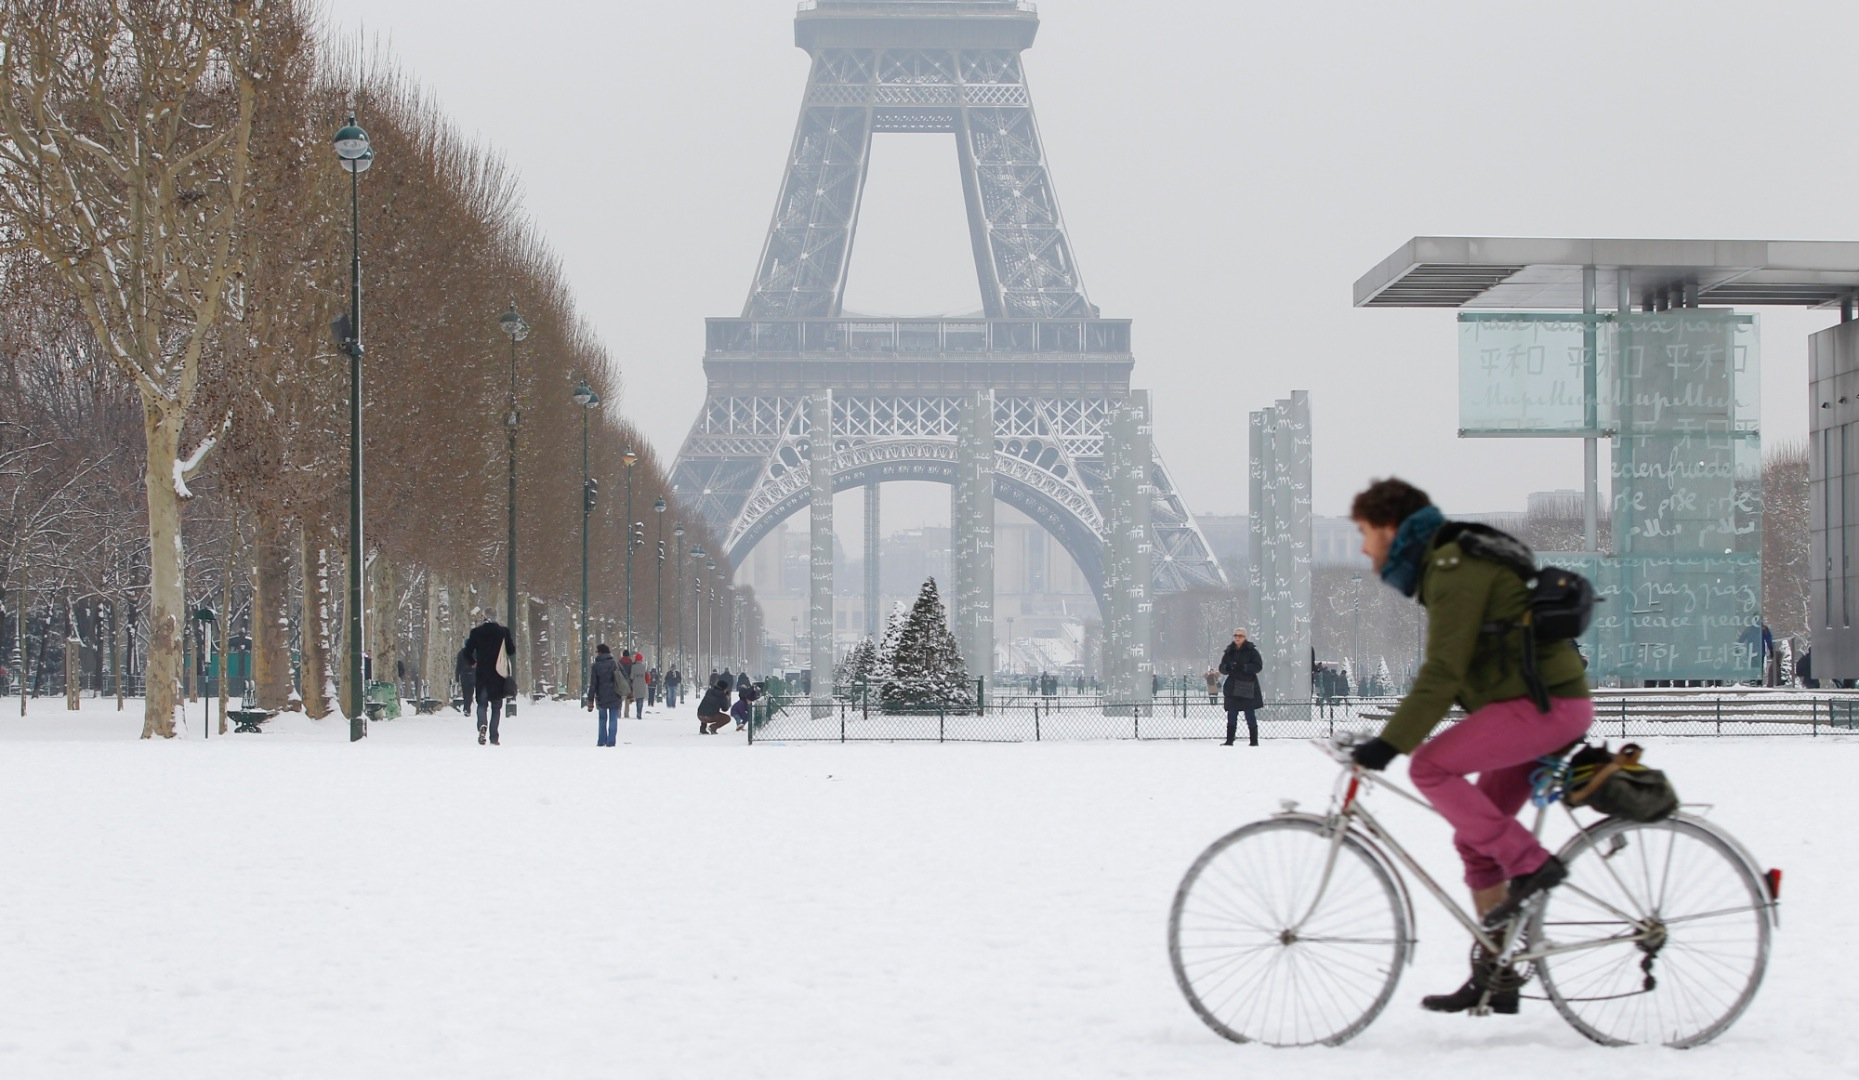 ENJOY WINTER HOLIDAYS IN PARIS